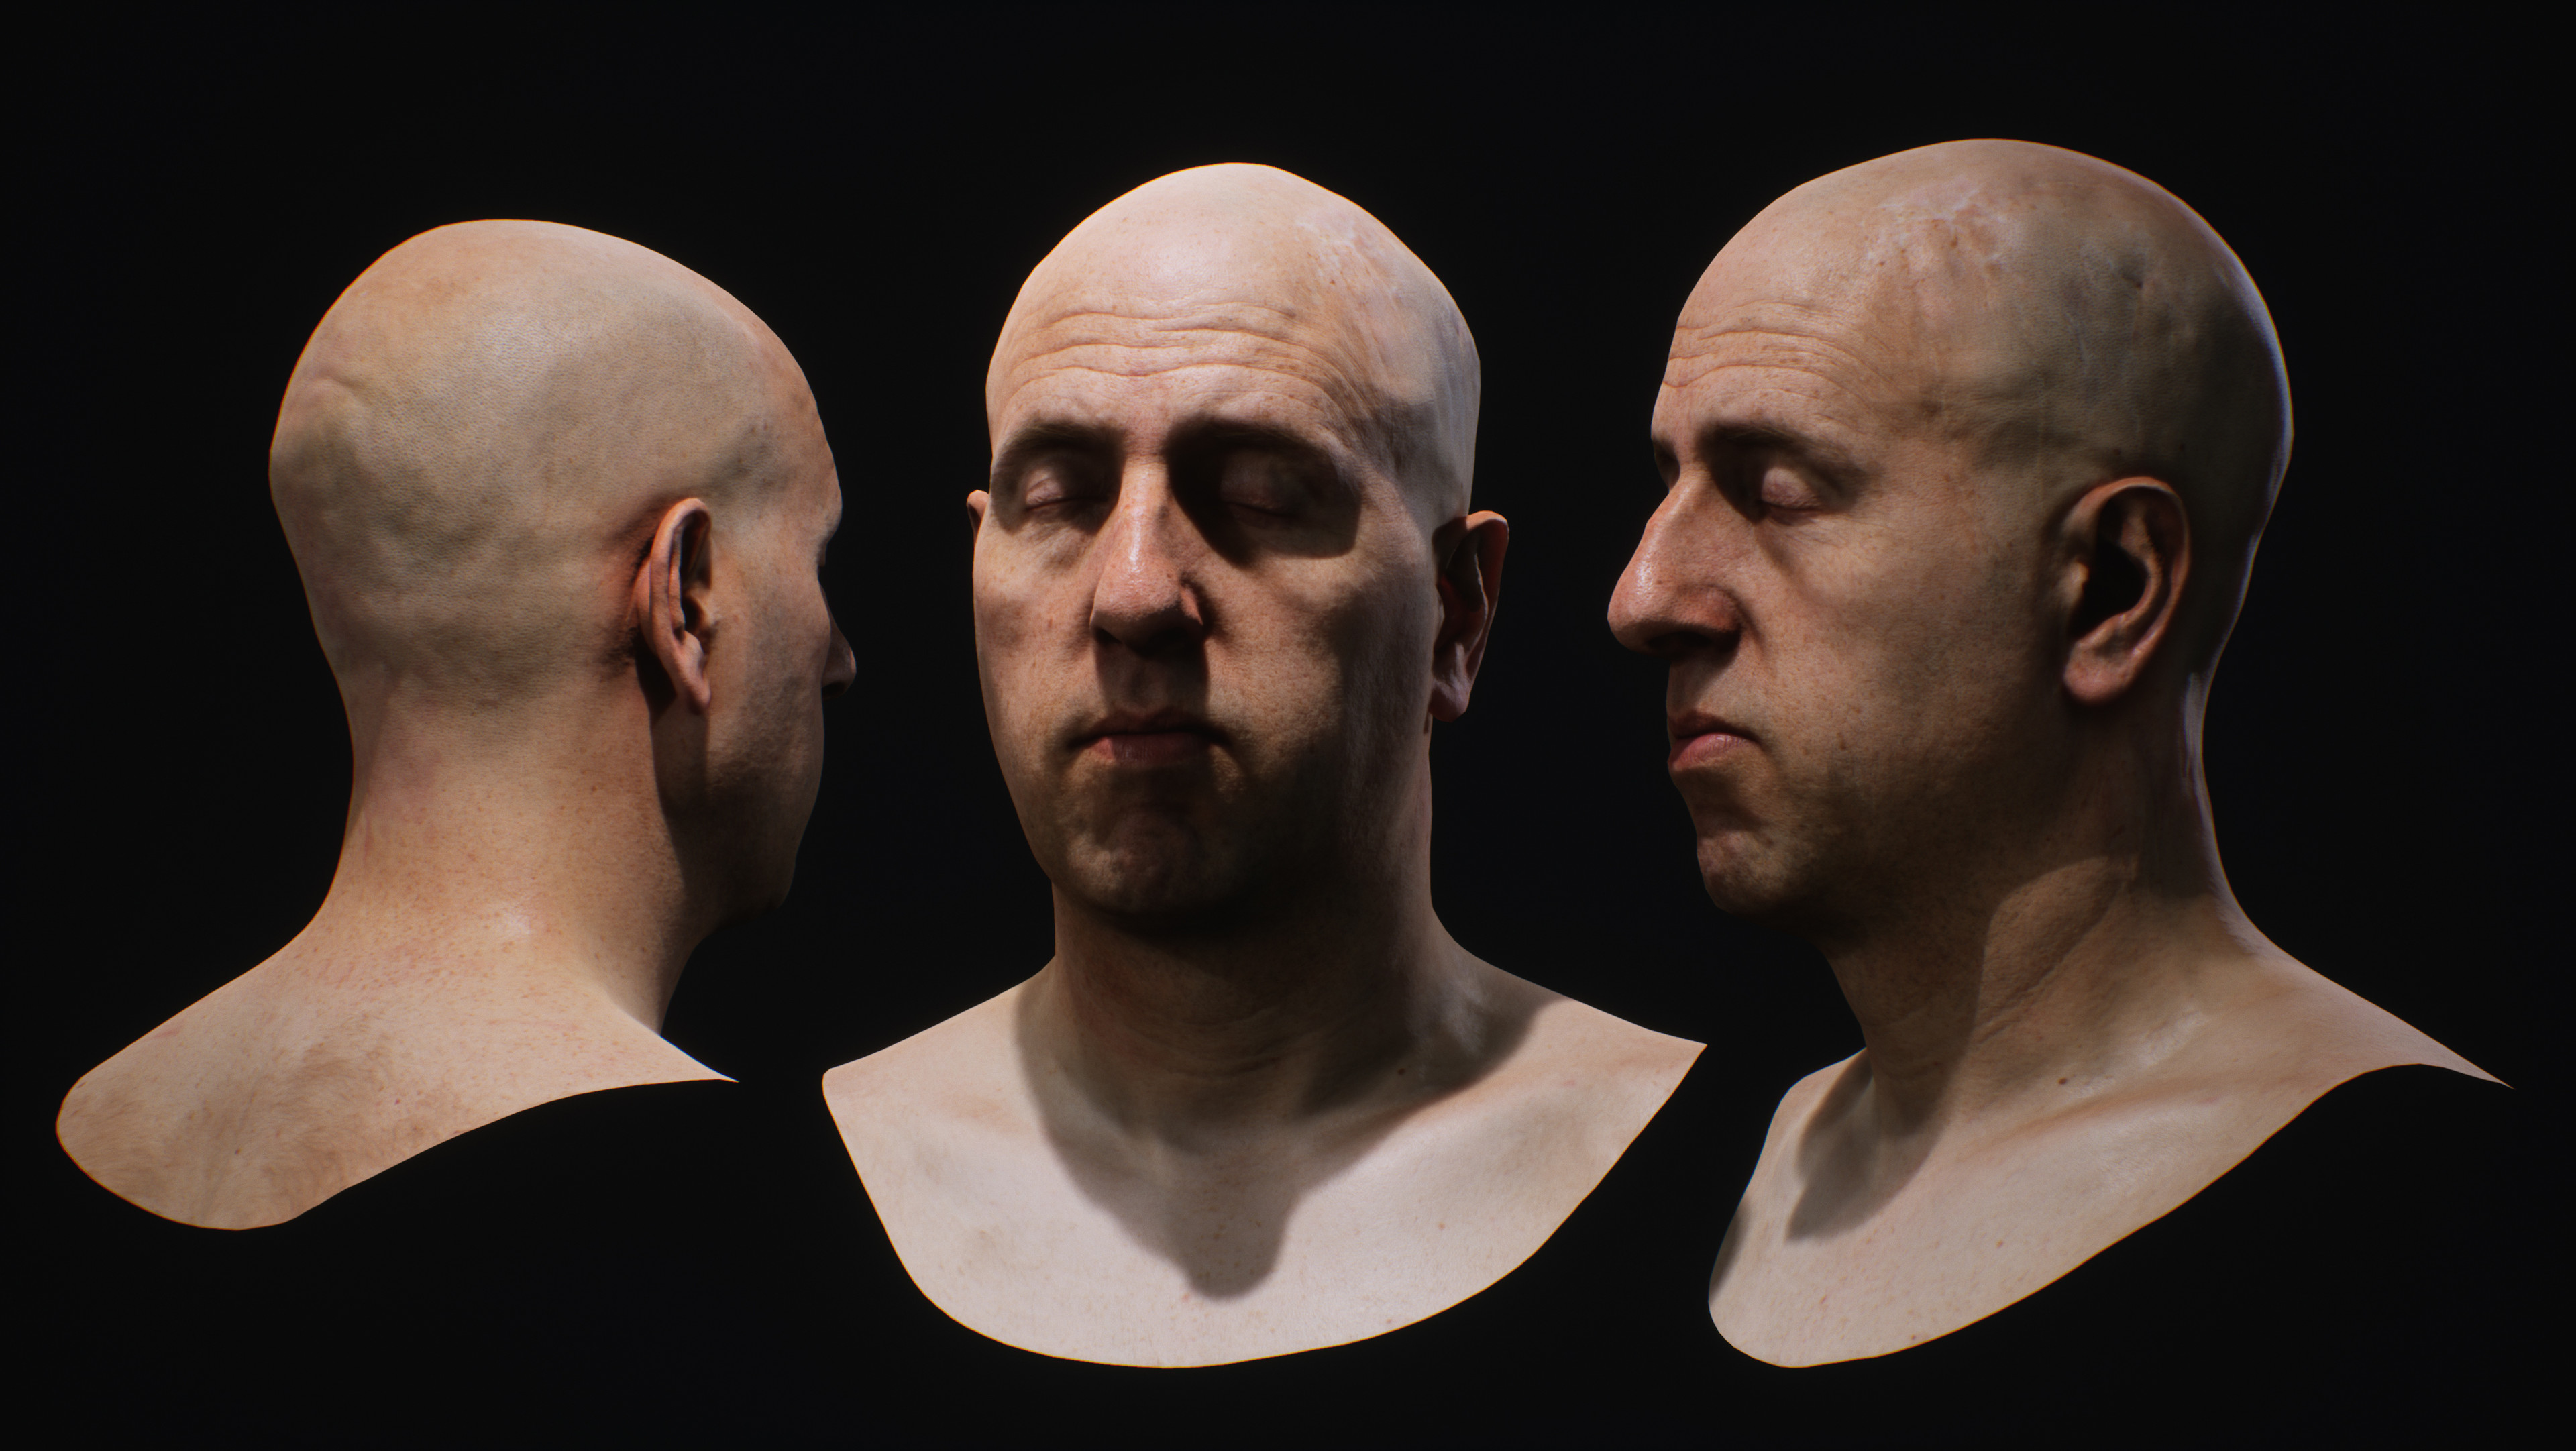 Only responsible for shader/lighting, model/texture by James Busby